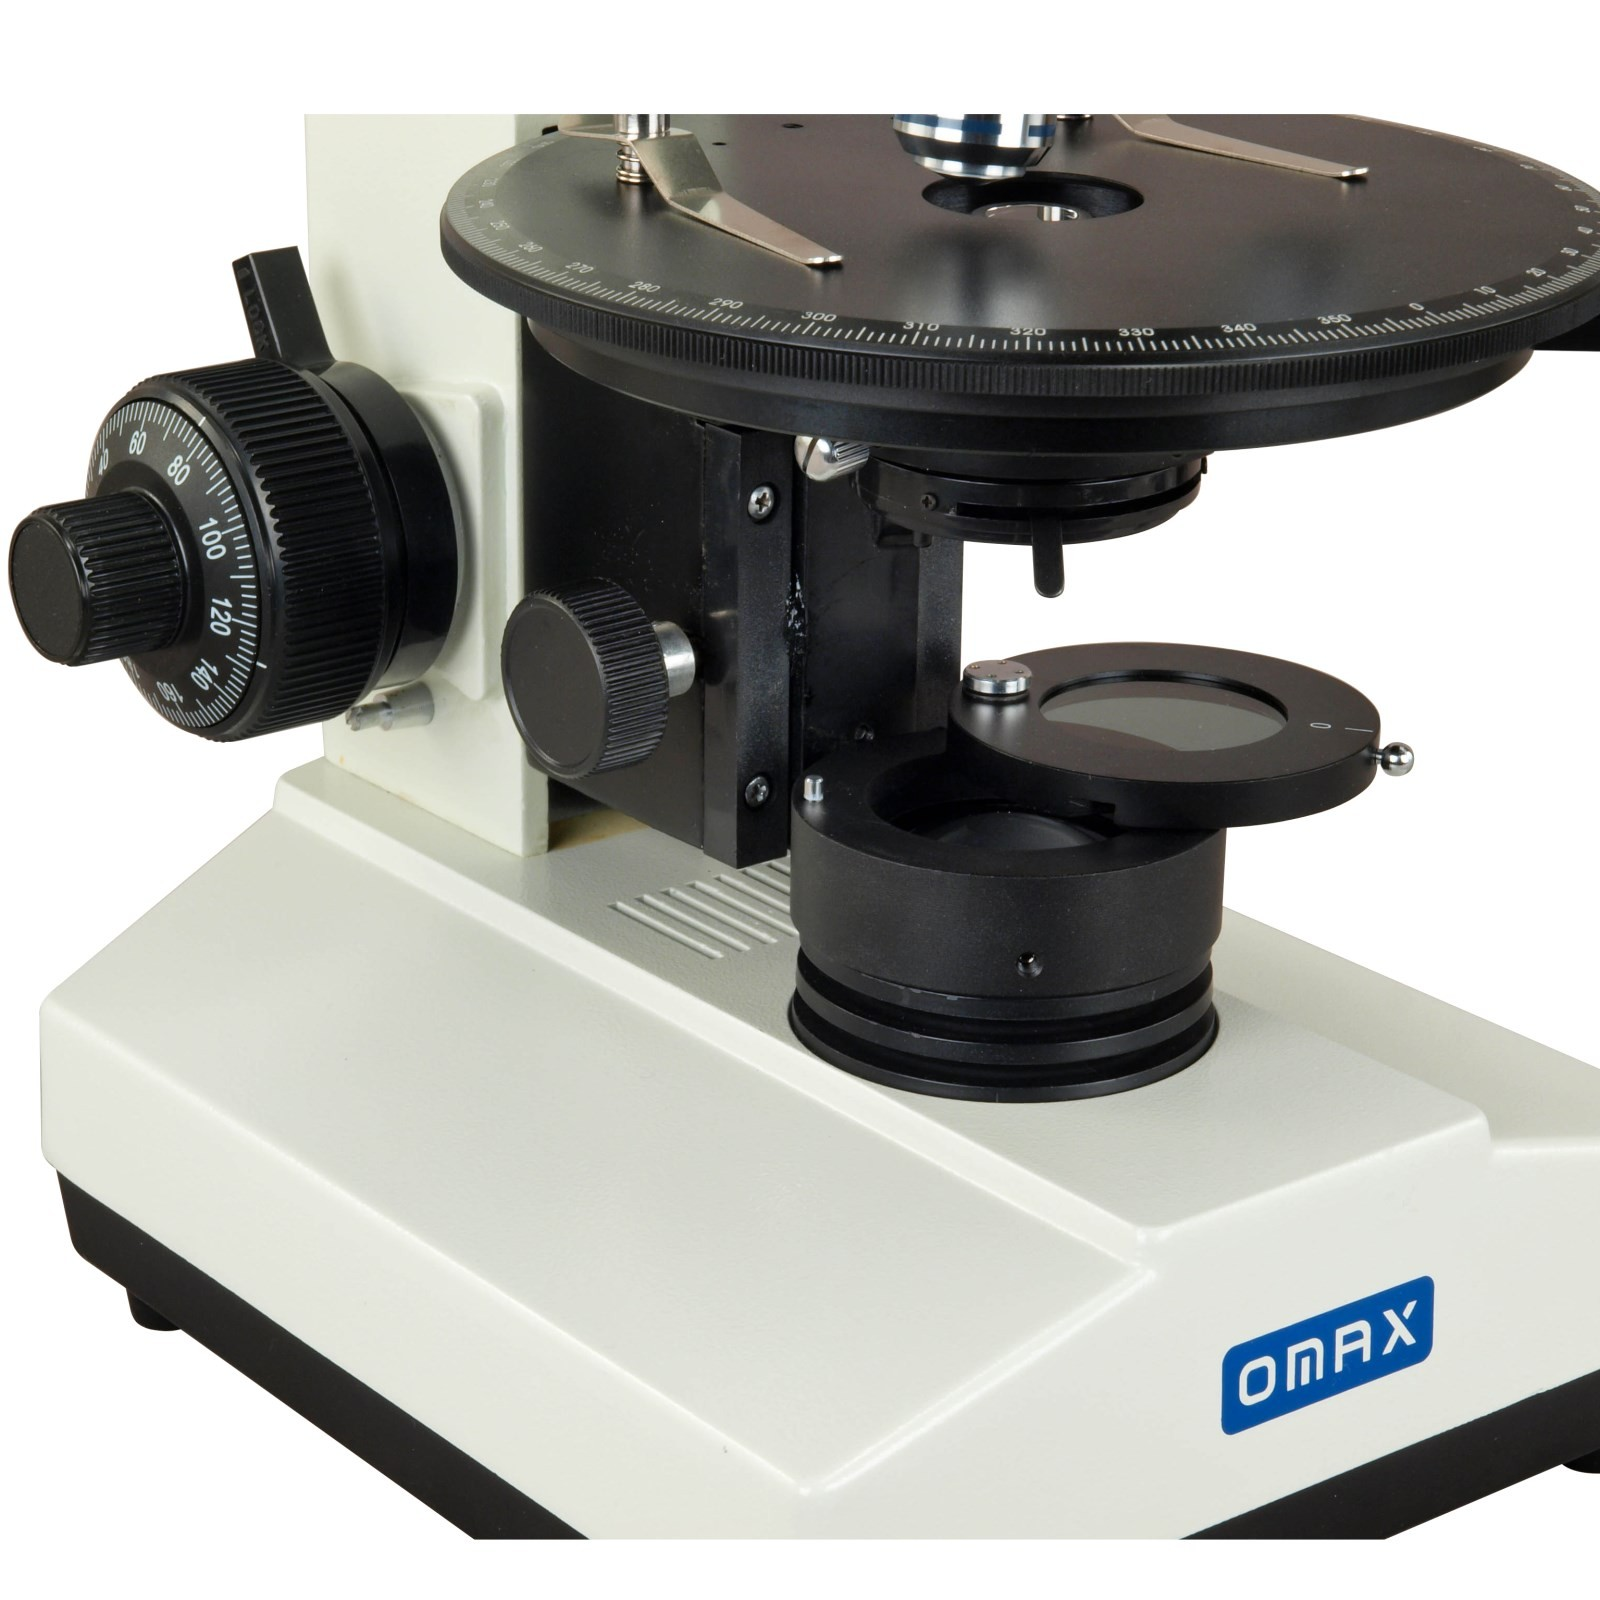 OMAX 40X-1500X USB3 5MP Trinocular Polarizing Microscope with Bertrand Lens and Rotatable Stage